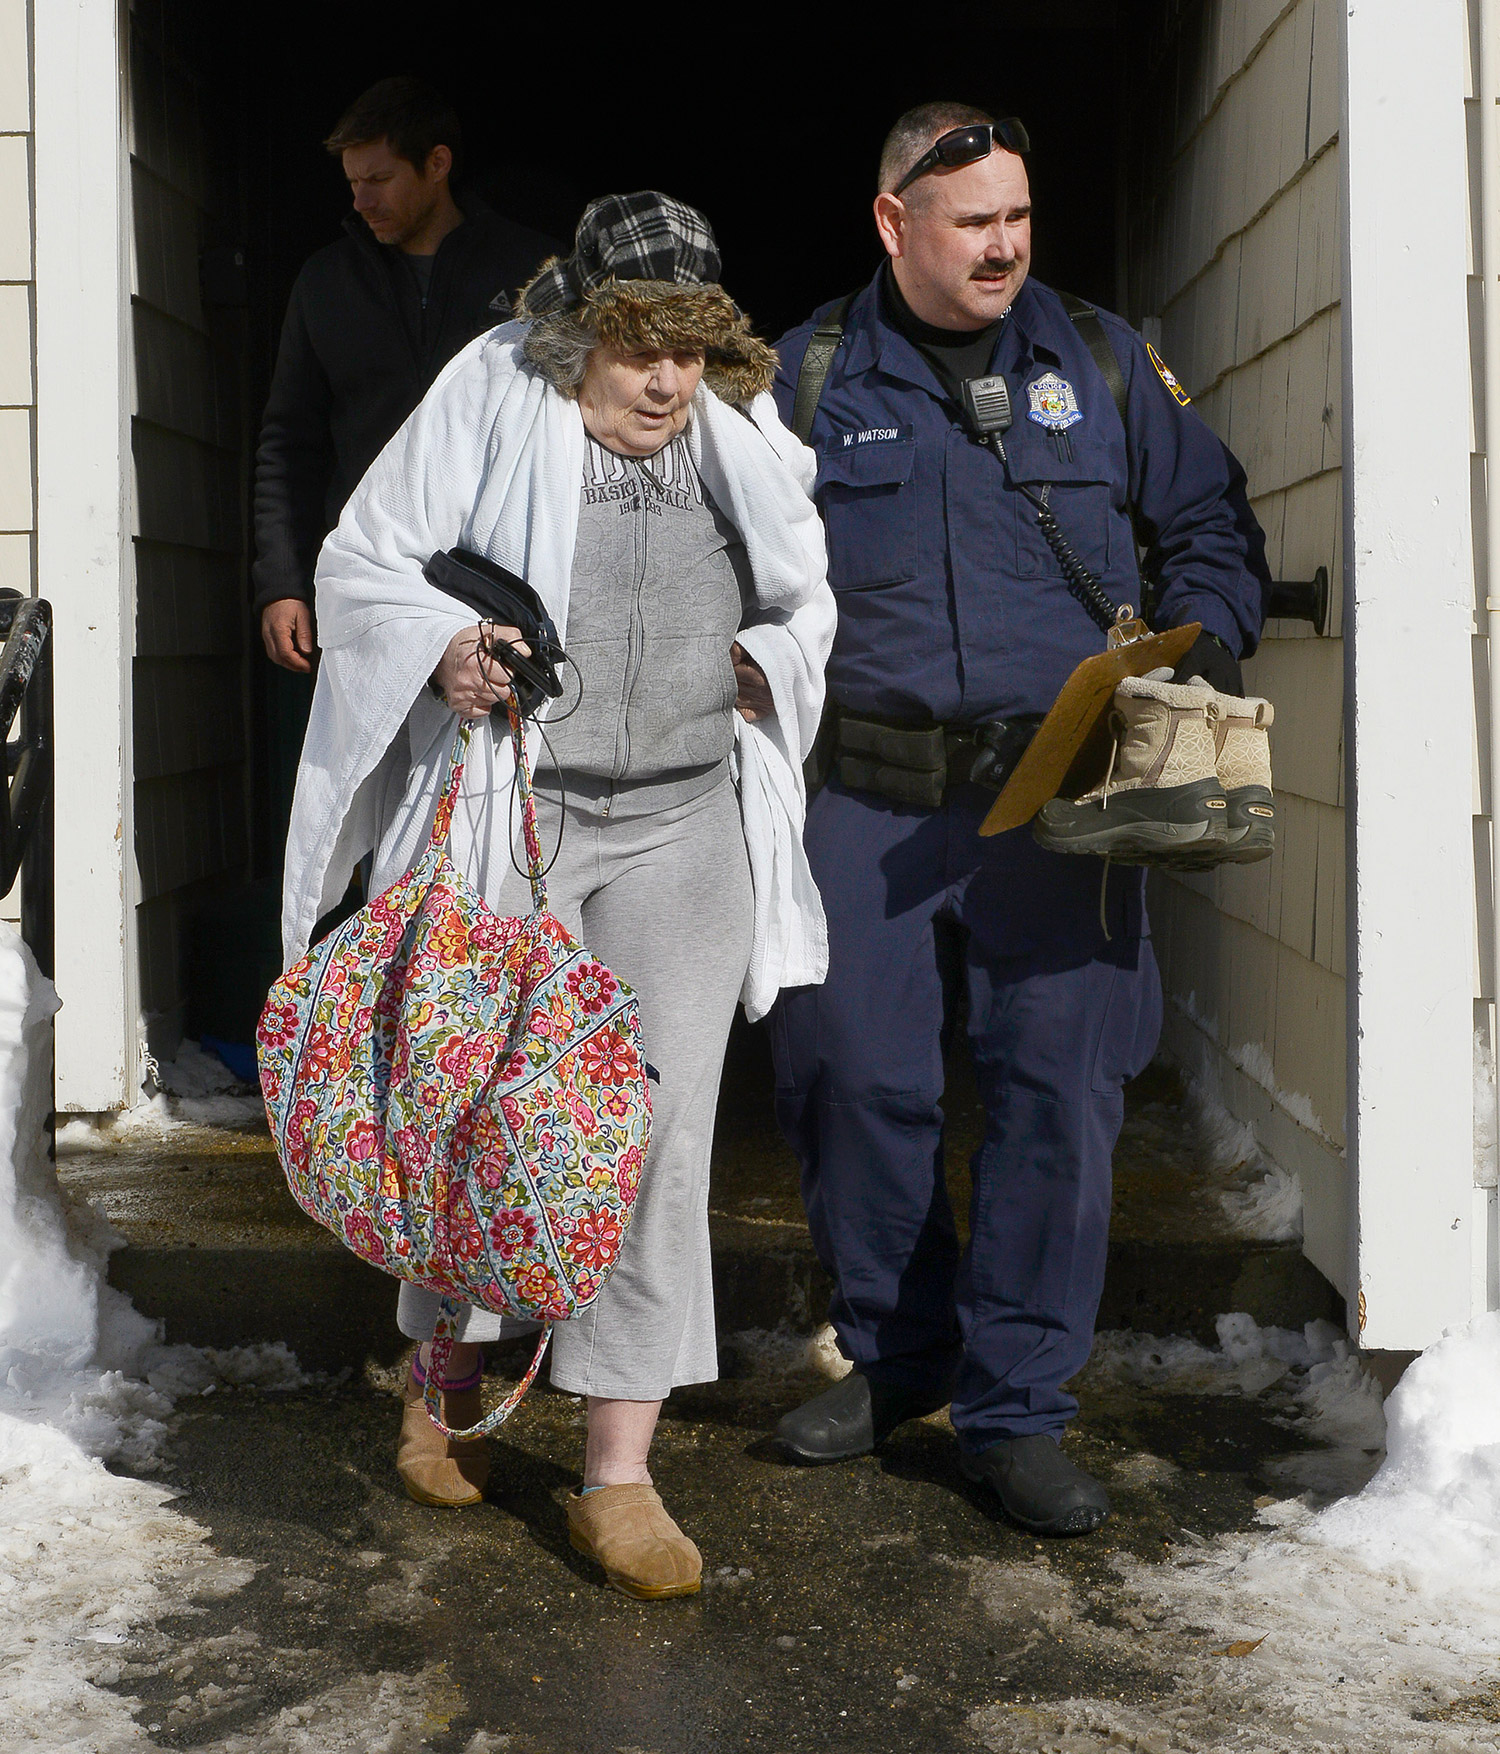 Residents Flee Fire At Old Orchard Beach Apartments